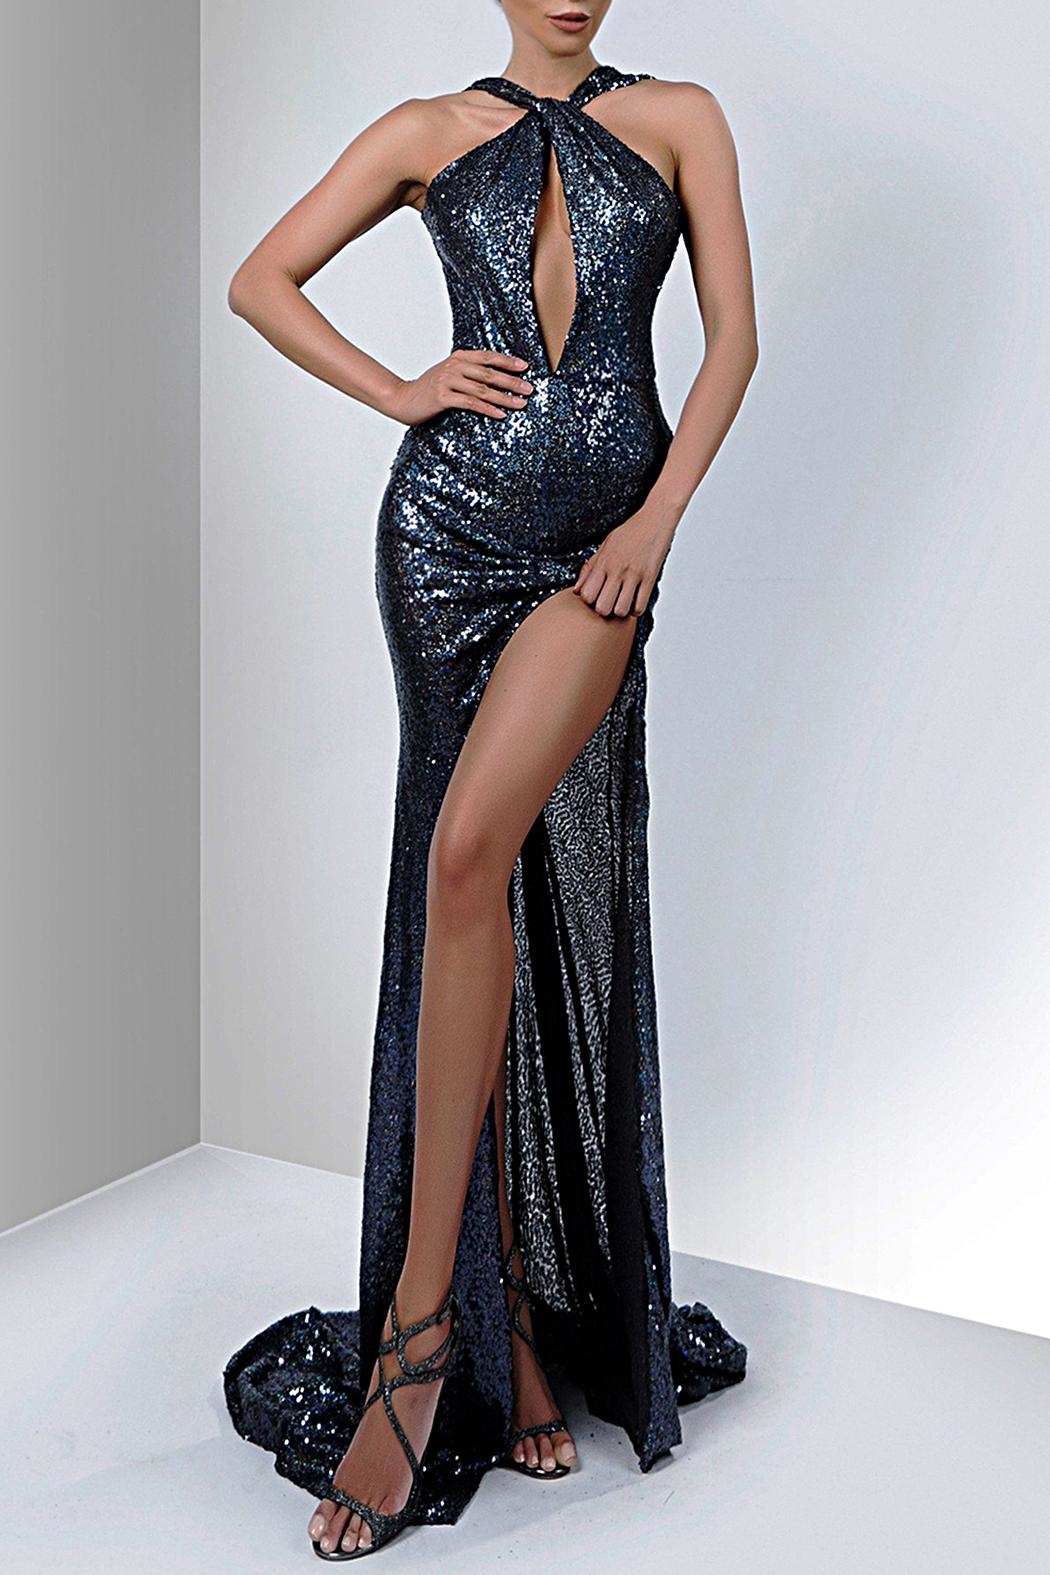 Savee Couture Savee Sequin Slit Dress - Front Cropped Image